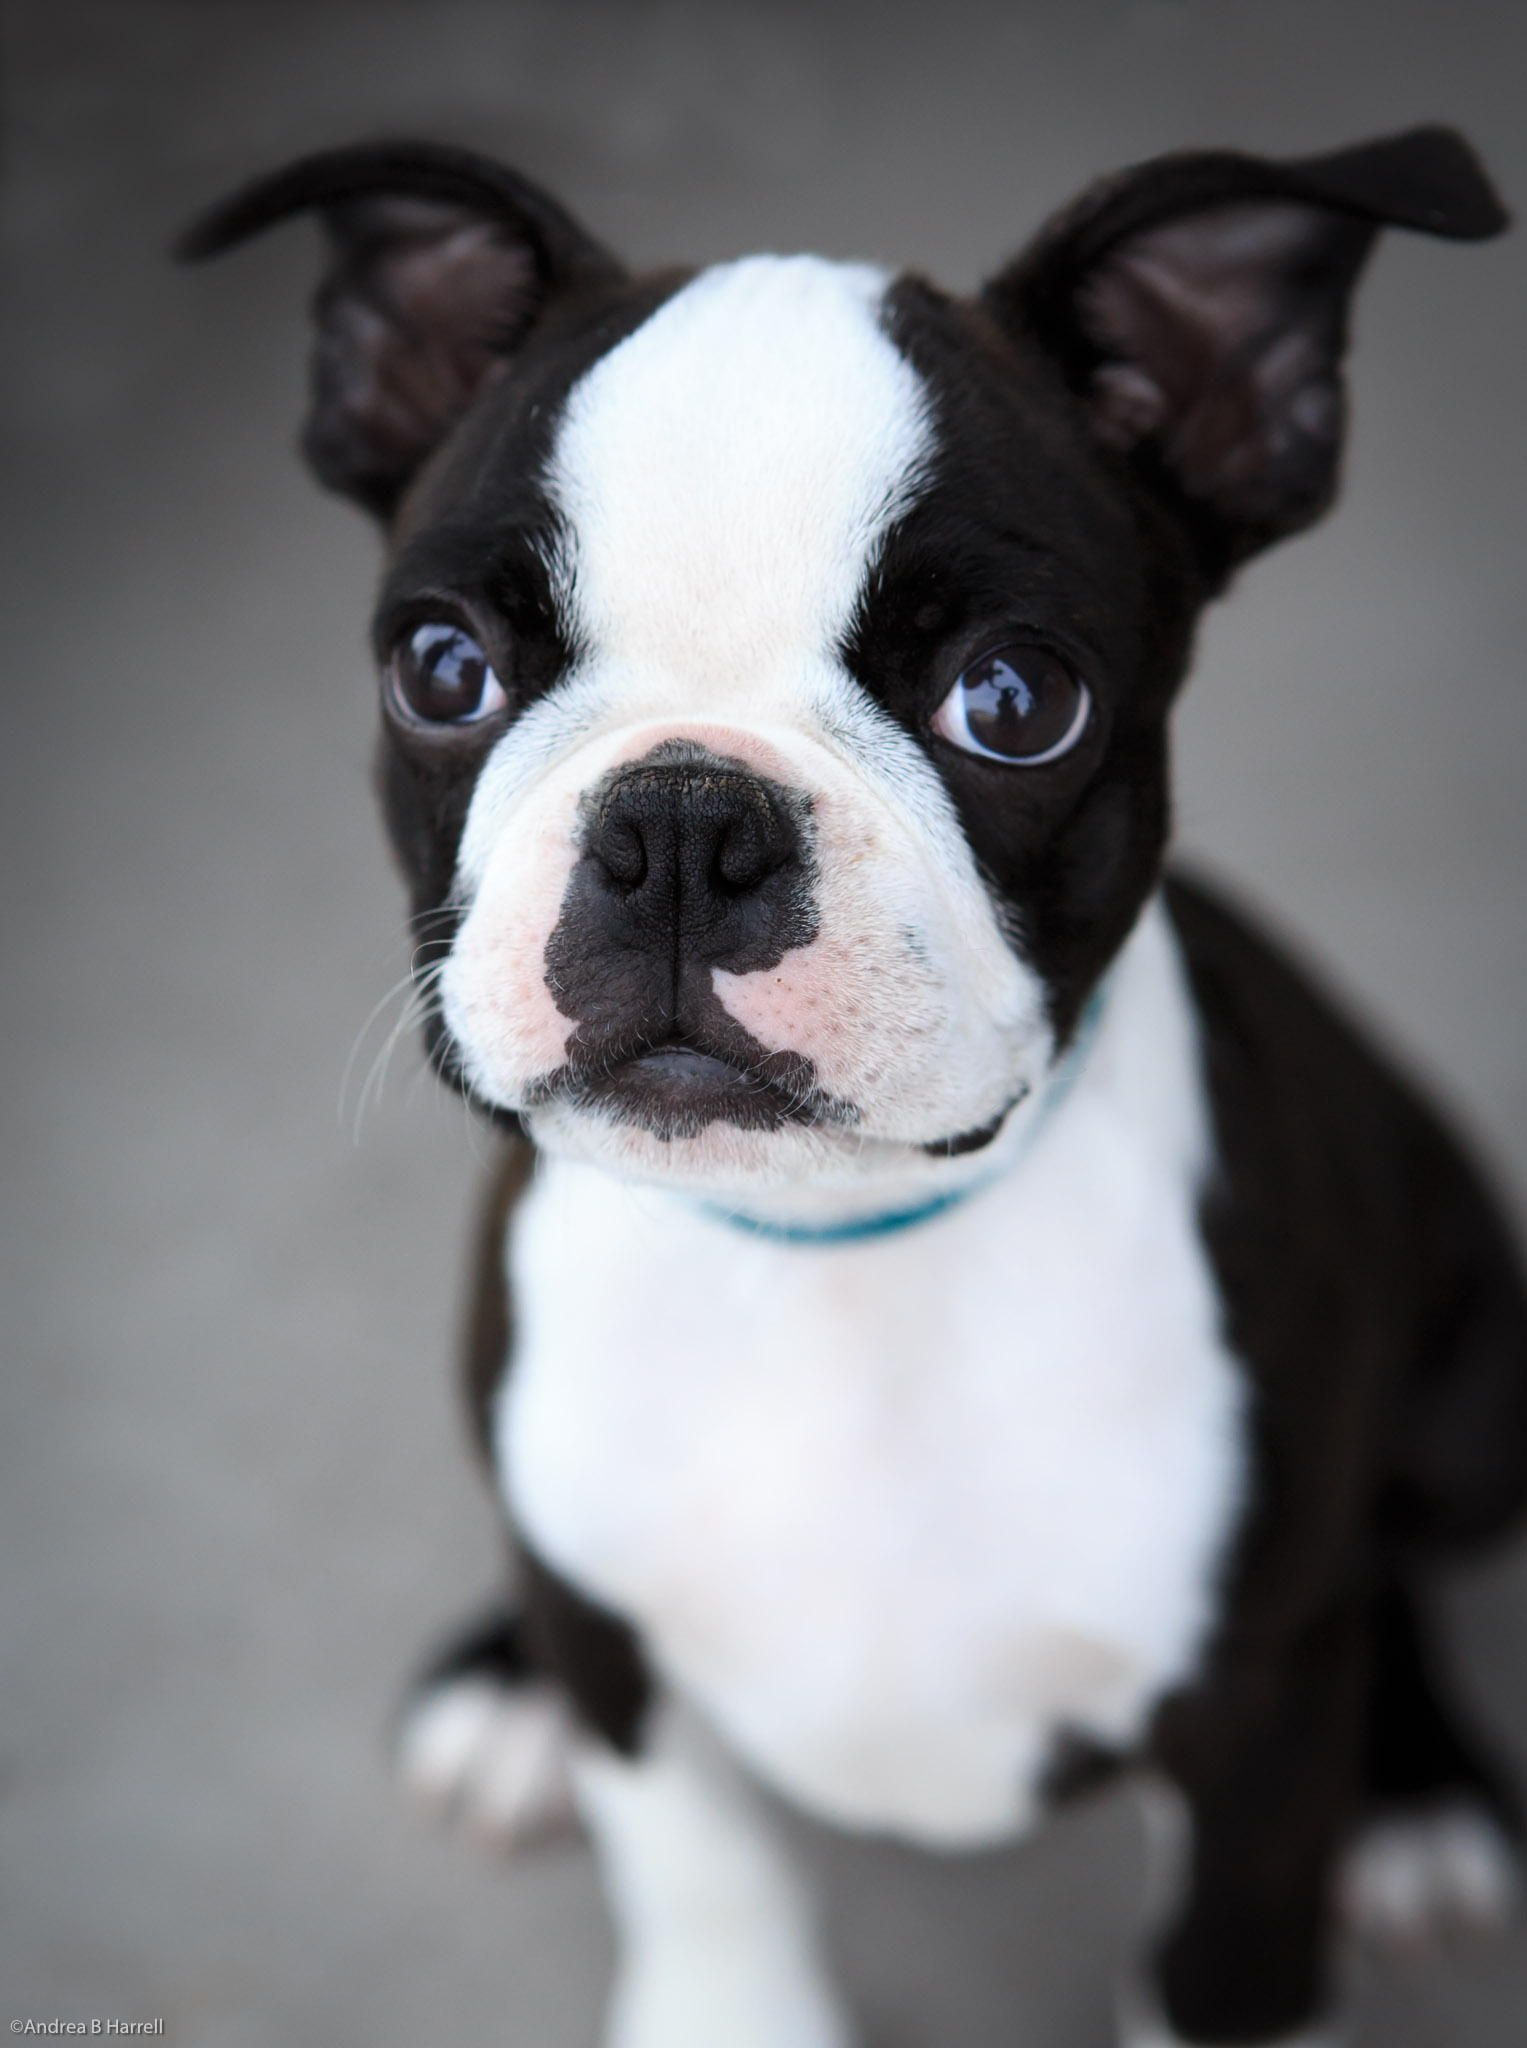 ::: What an adorable face on this sweet Boston Terrier puppy. I love Bostons for their  intelligence and loving hearts. Lorr